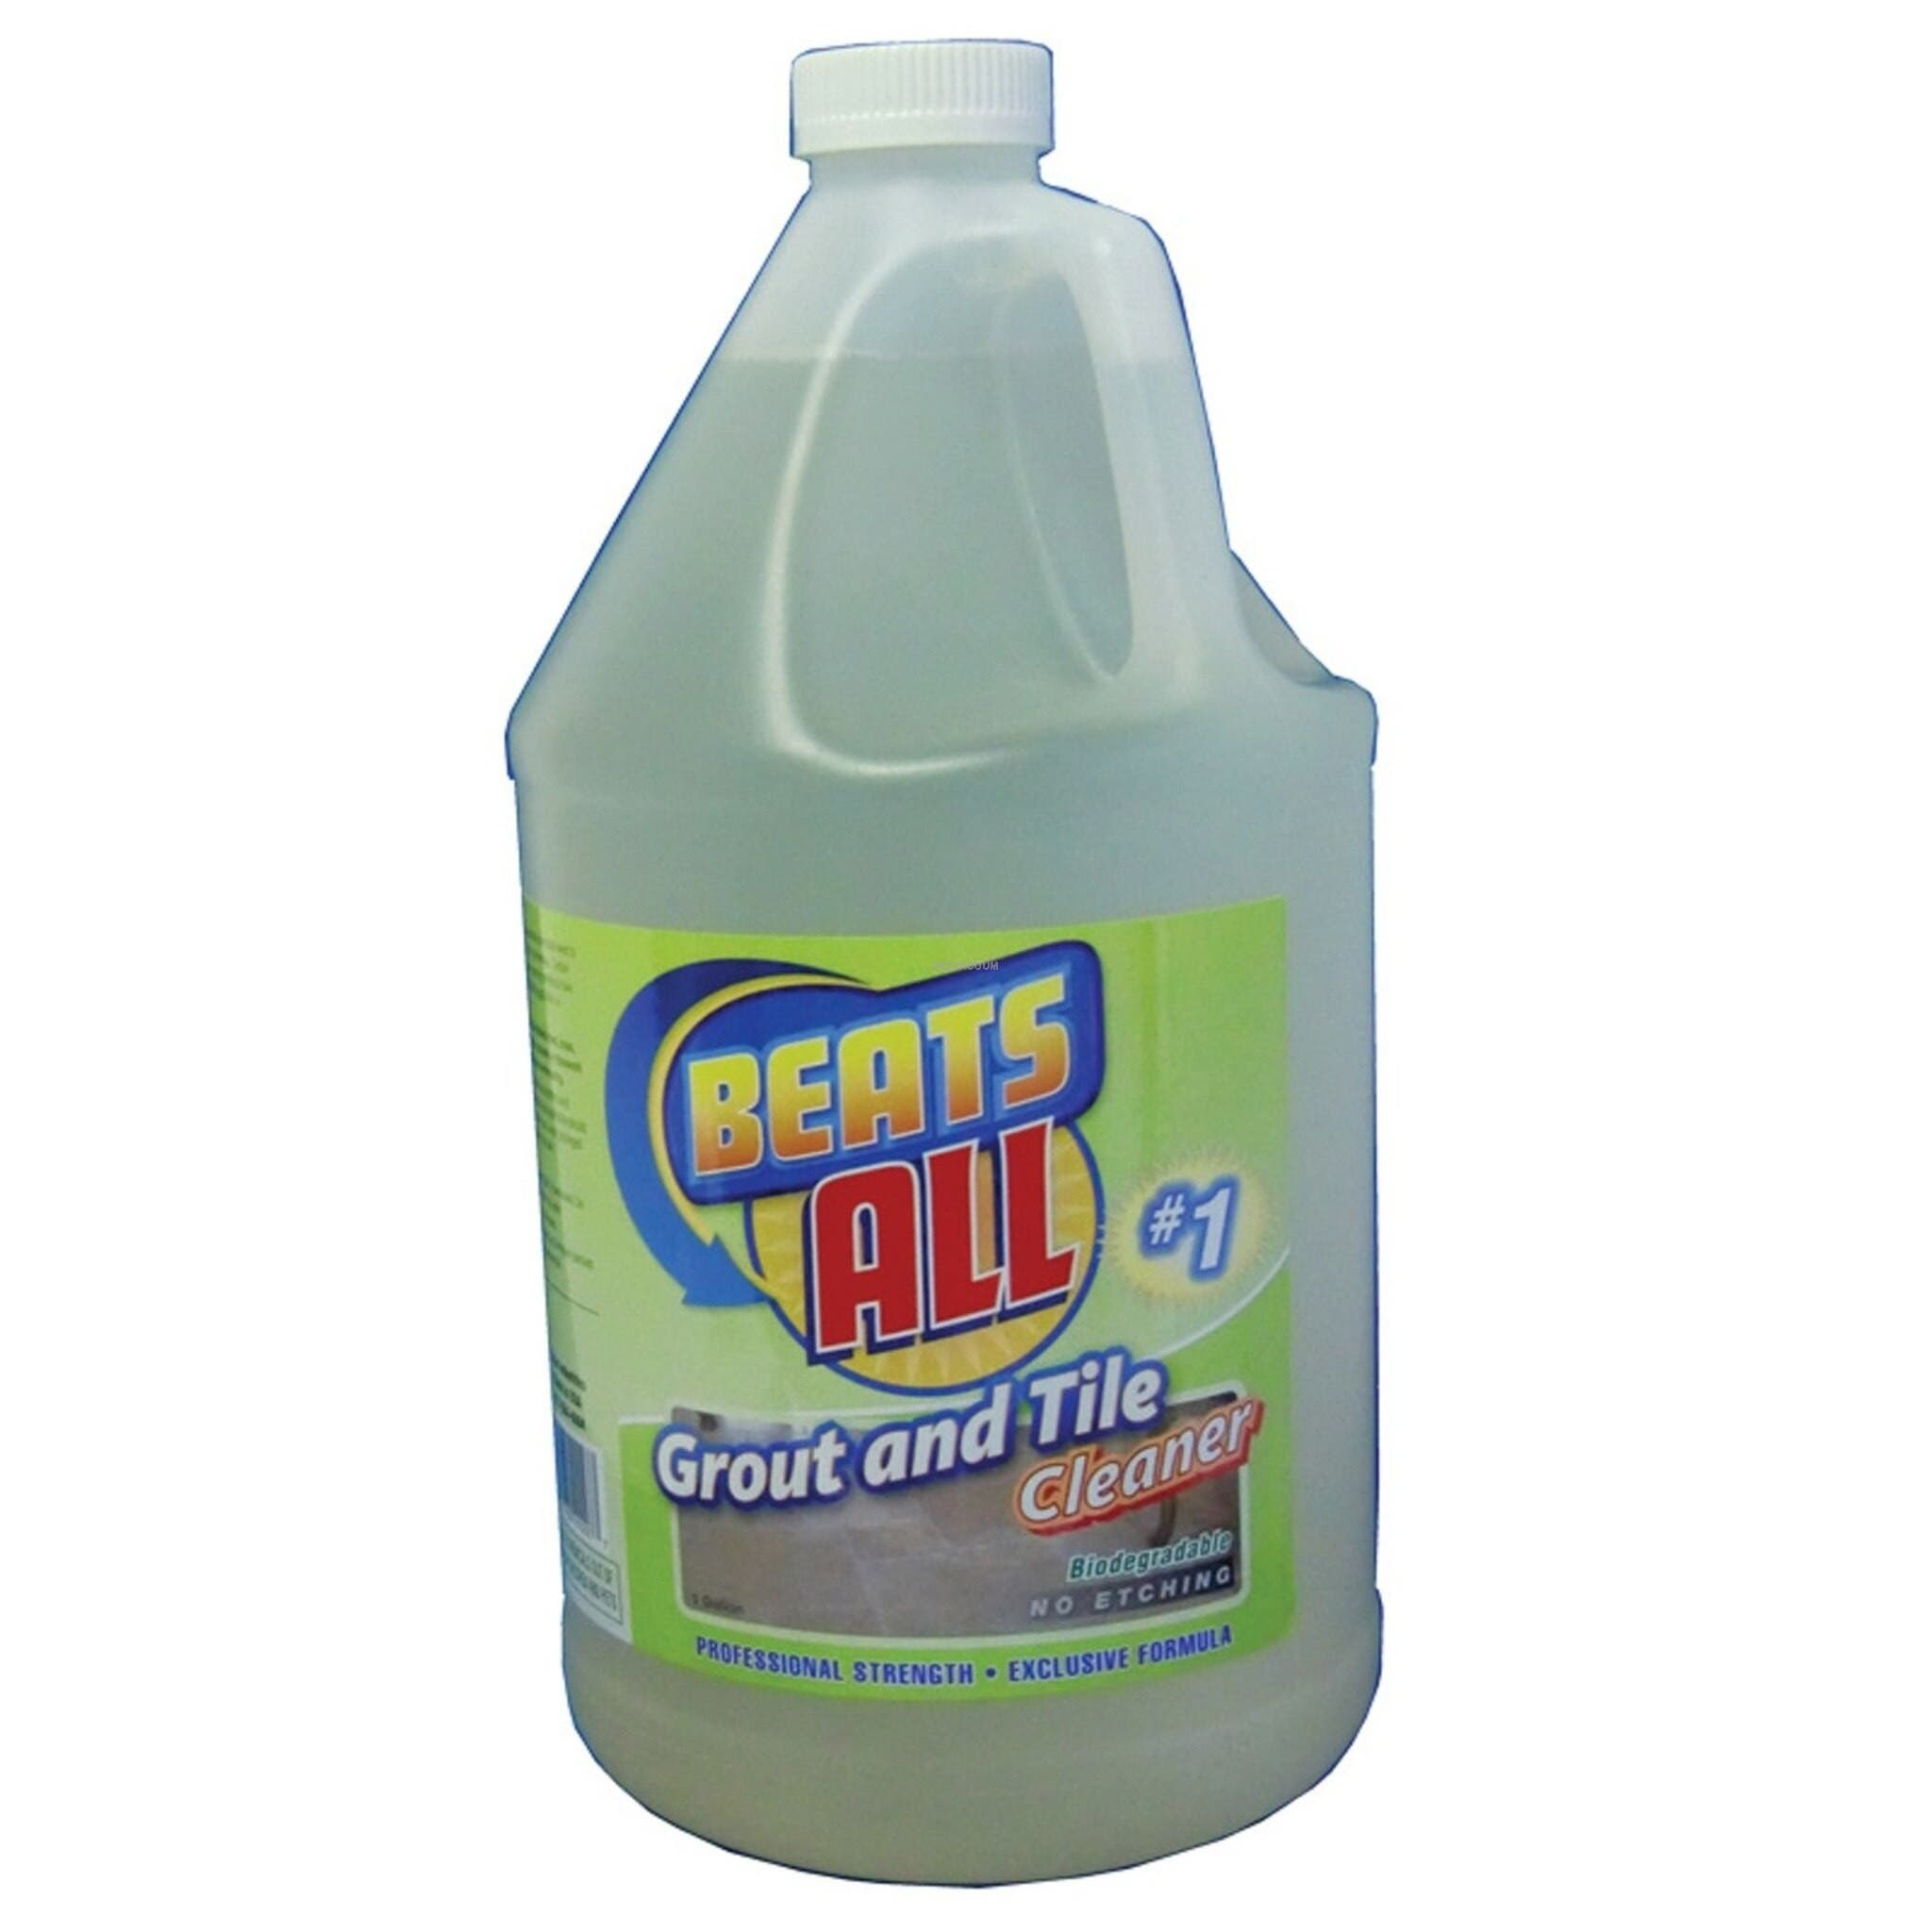 Beats All Grout And Tile Cleaner One Gallon 721762422977